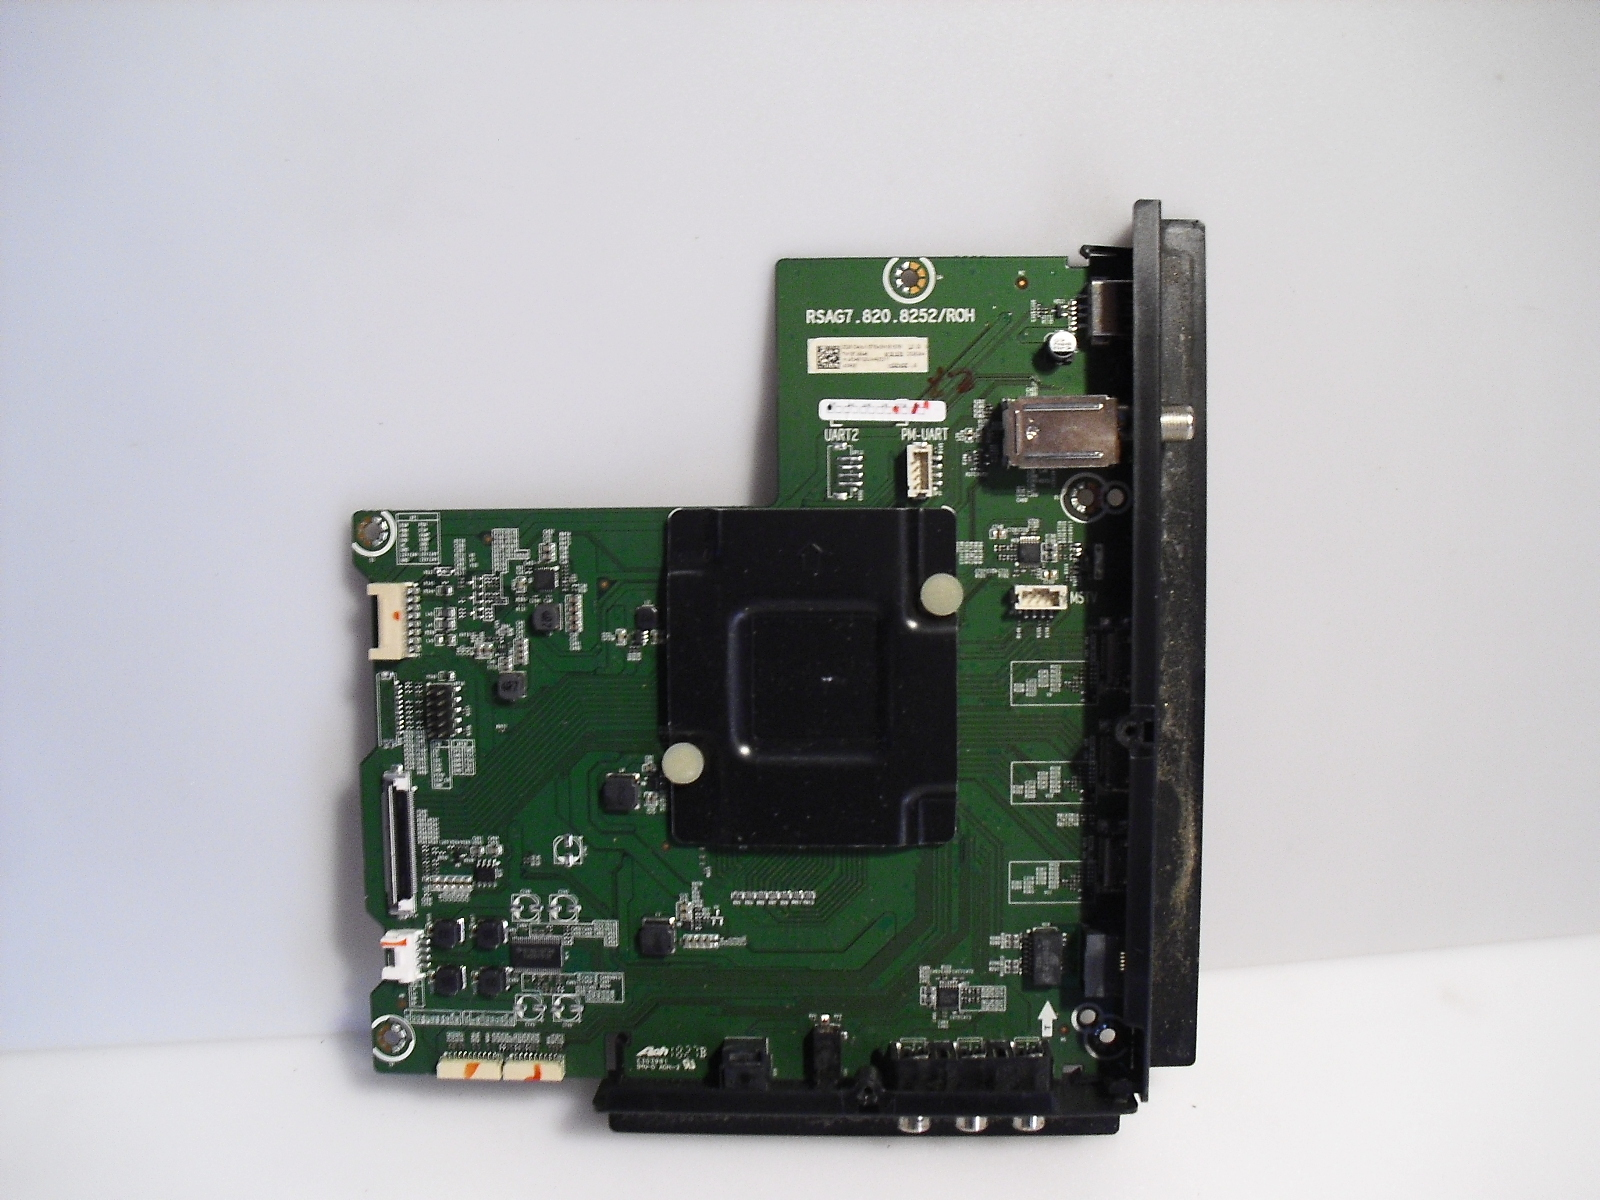 Primary image for rsag7.820.8252/roh   main  board  for  hisense  43rge